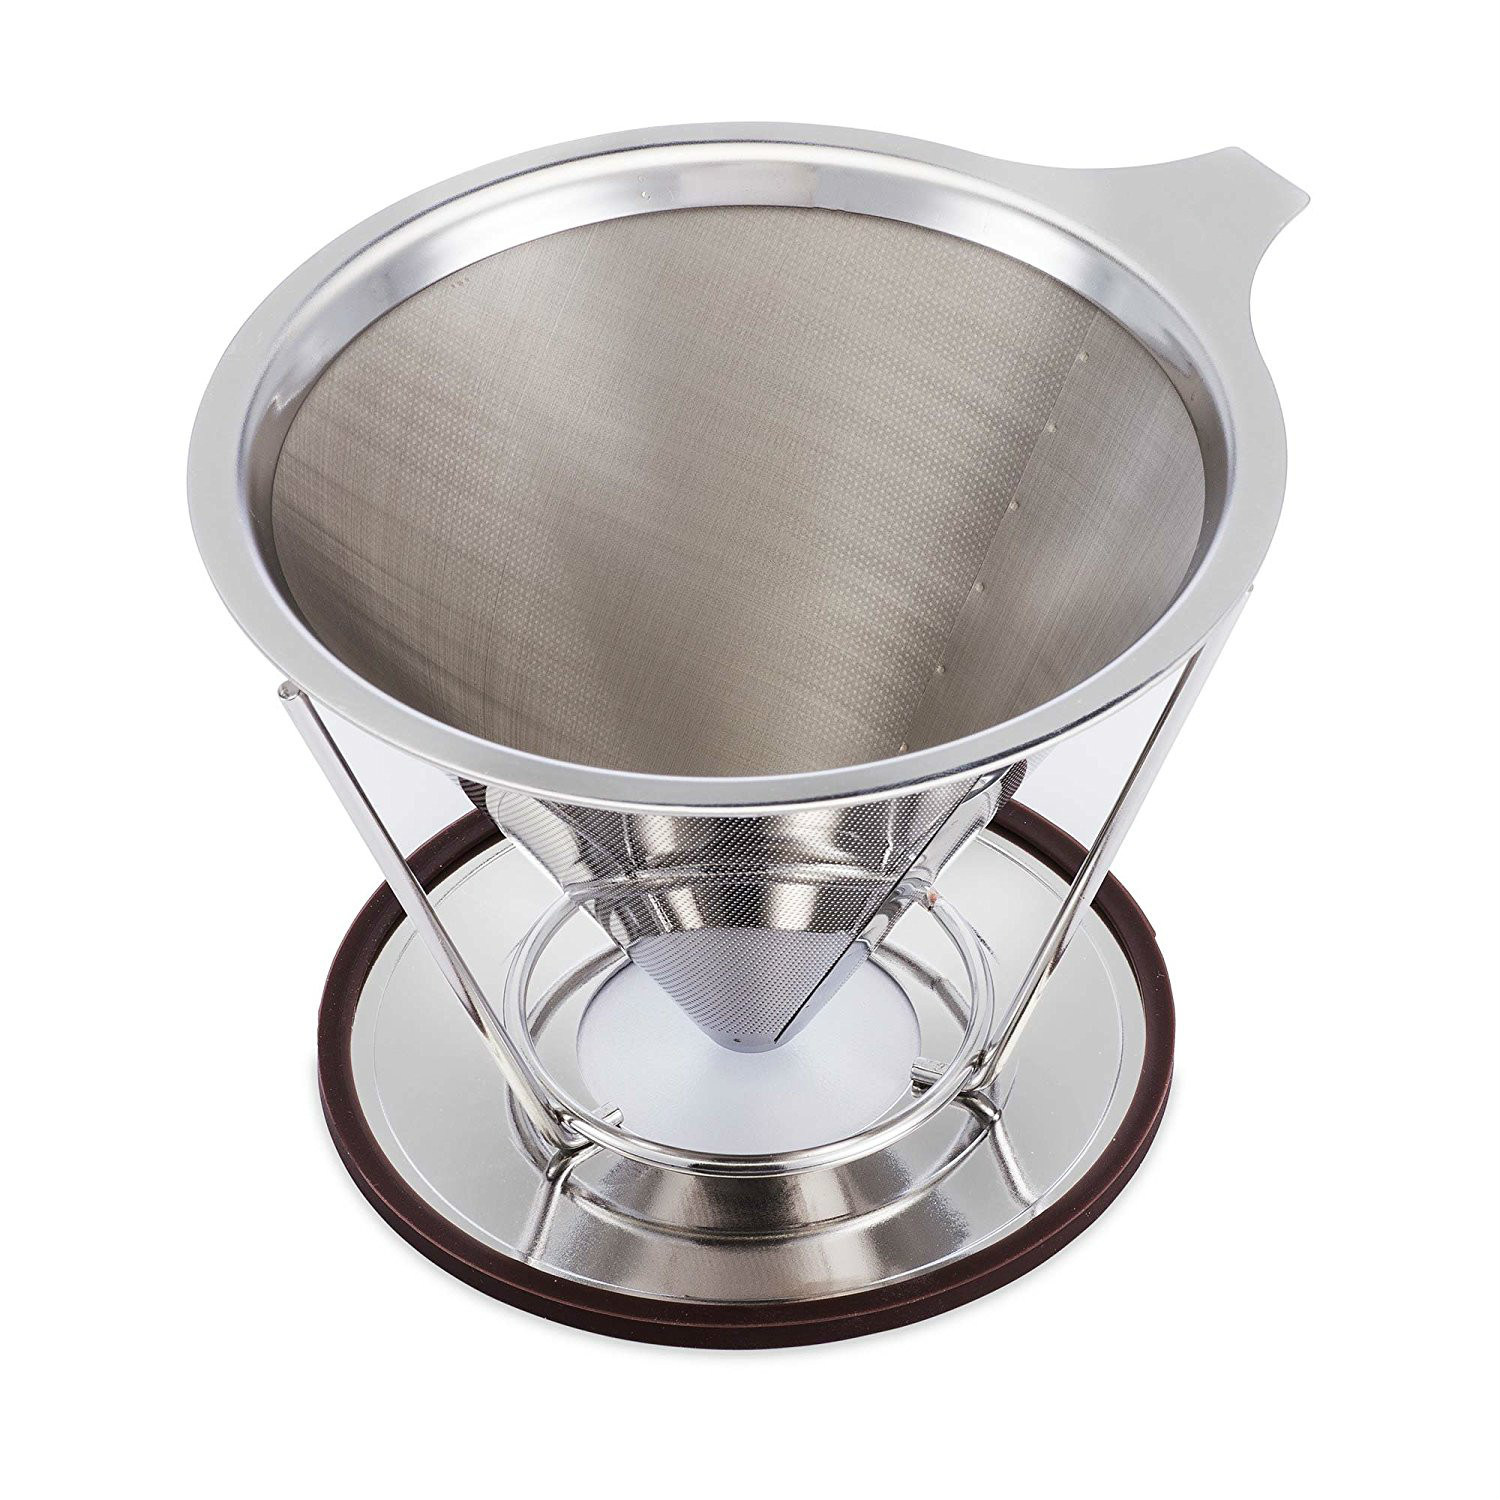 Pour Over Stainless Steel Cone Filter